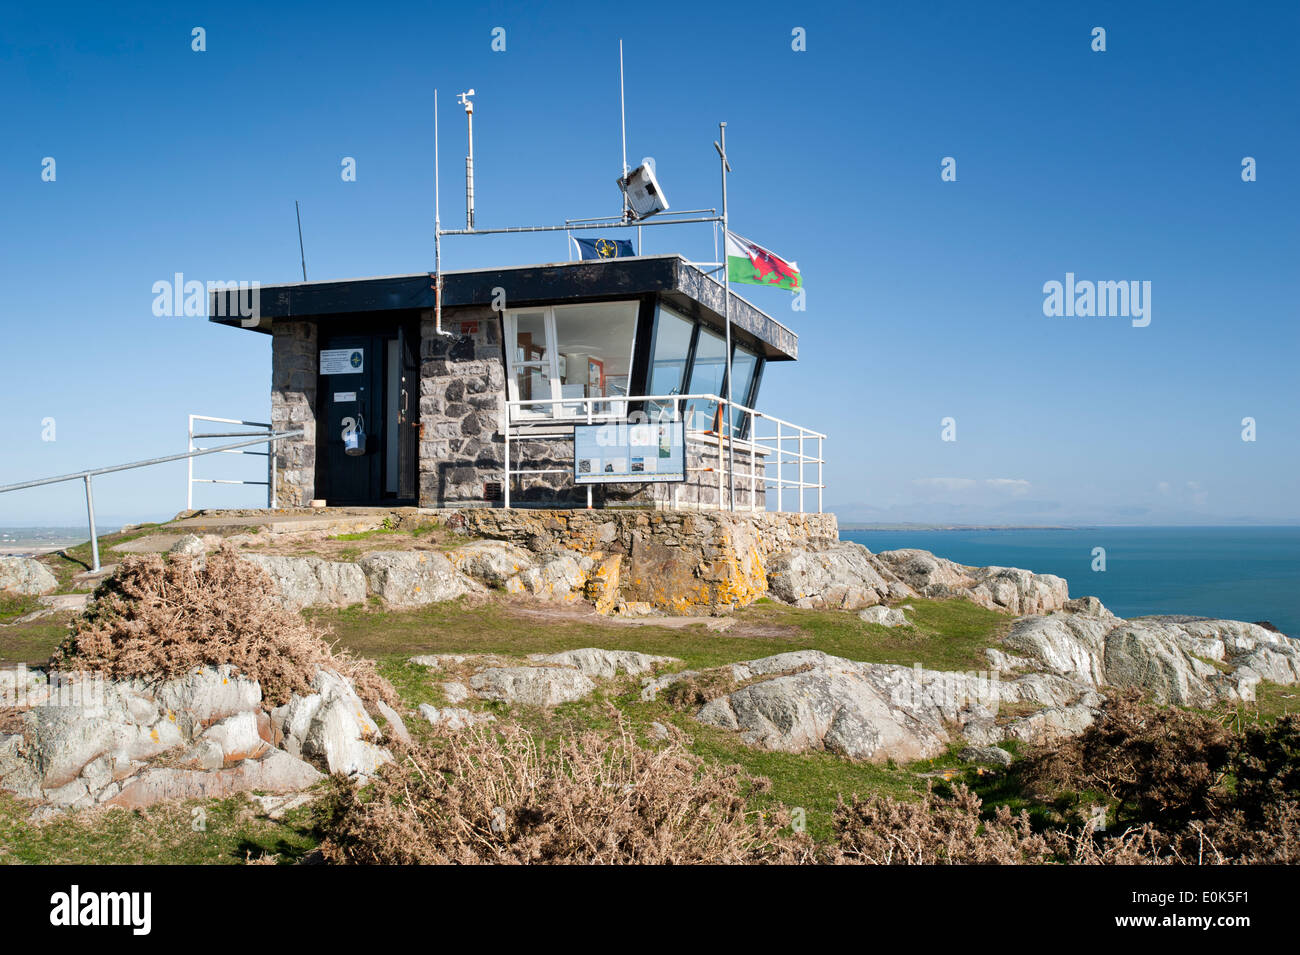 Roscolyn Coastguard Lookout Station, Roscolyn, Anglesey, North Wales, UK - Stock Image